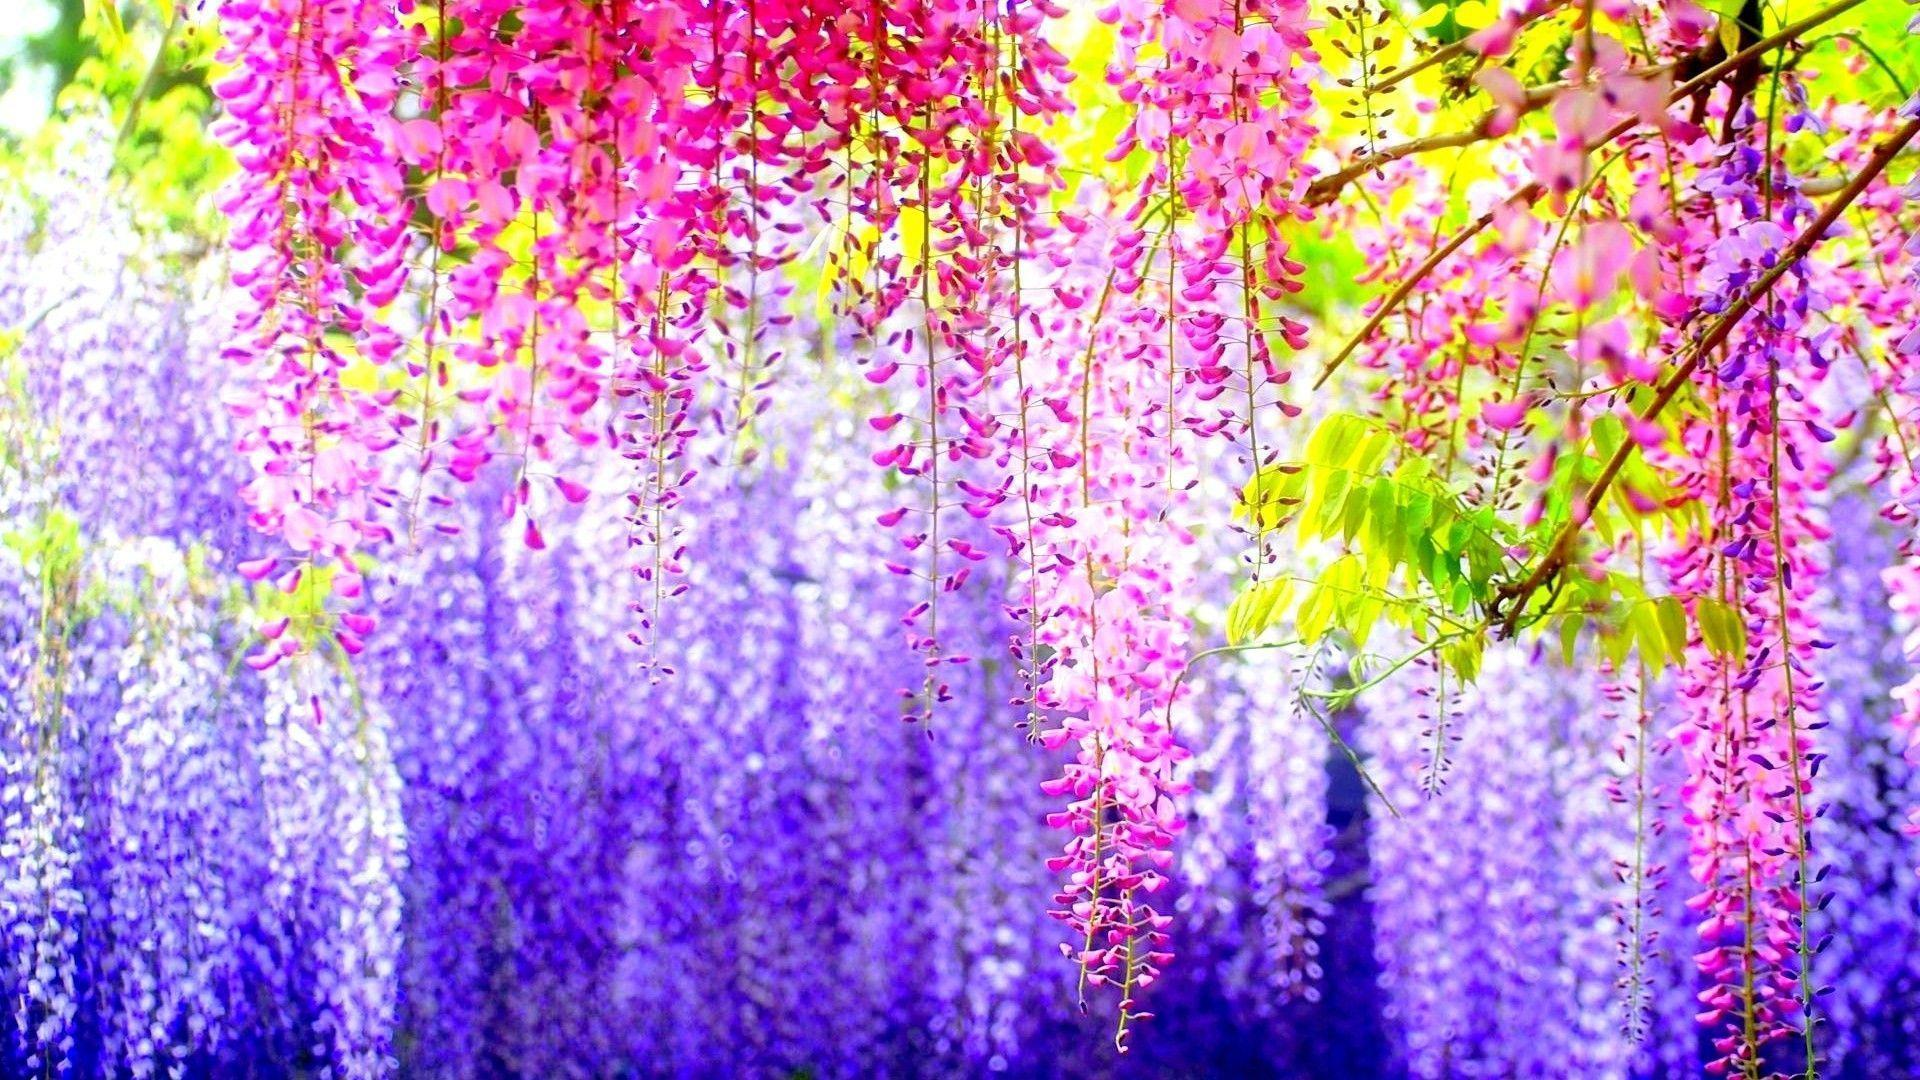 Pretty flowers backgrounds wallpaper cave pix for pretty flowers backgrounds mightylinksfo